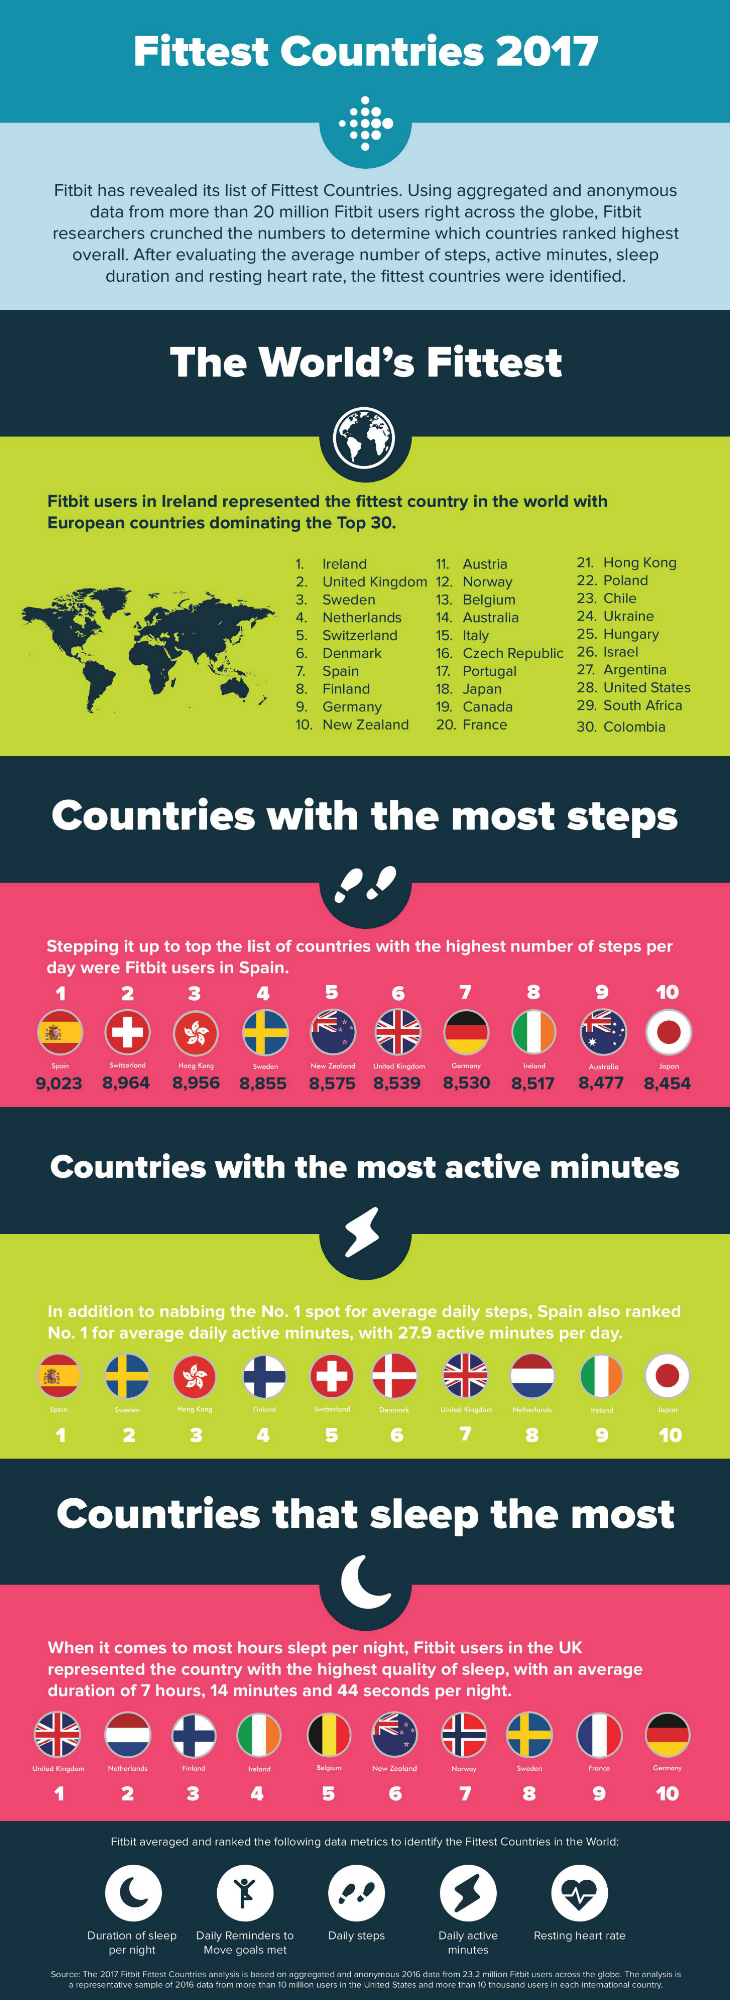 fittest countries